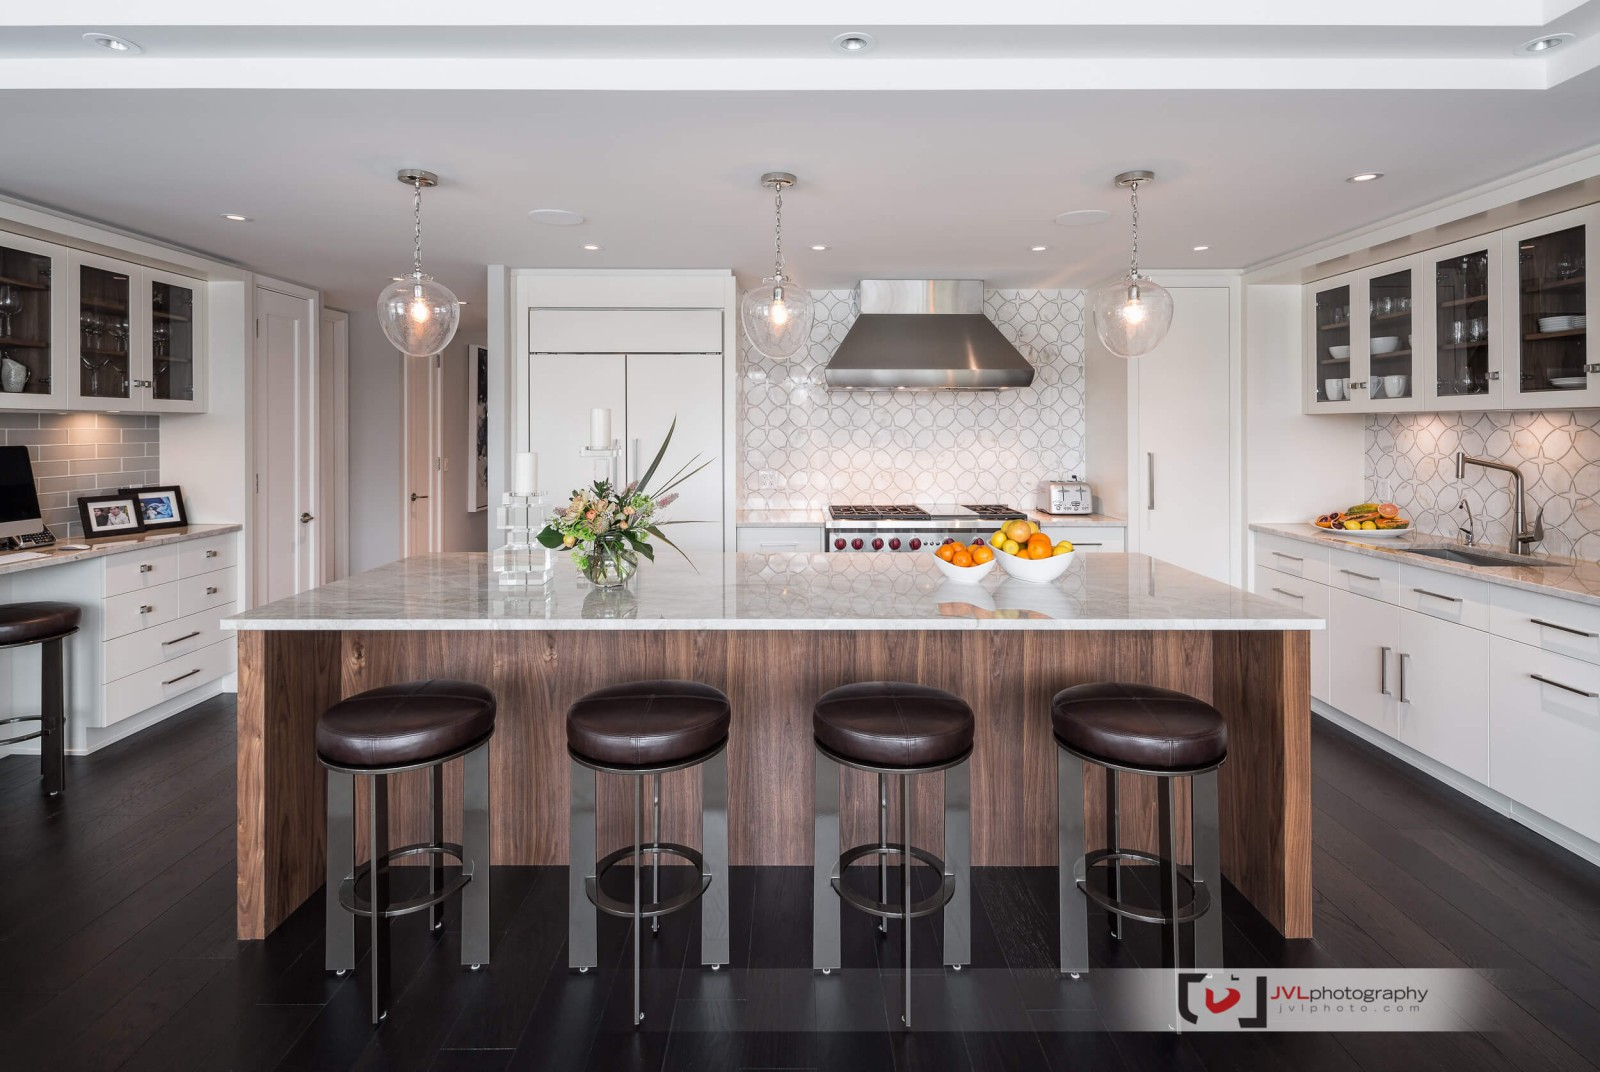 Award Winning Ottawa Kitchens by Astro Design  JVL PhotographyJVL Photography